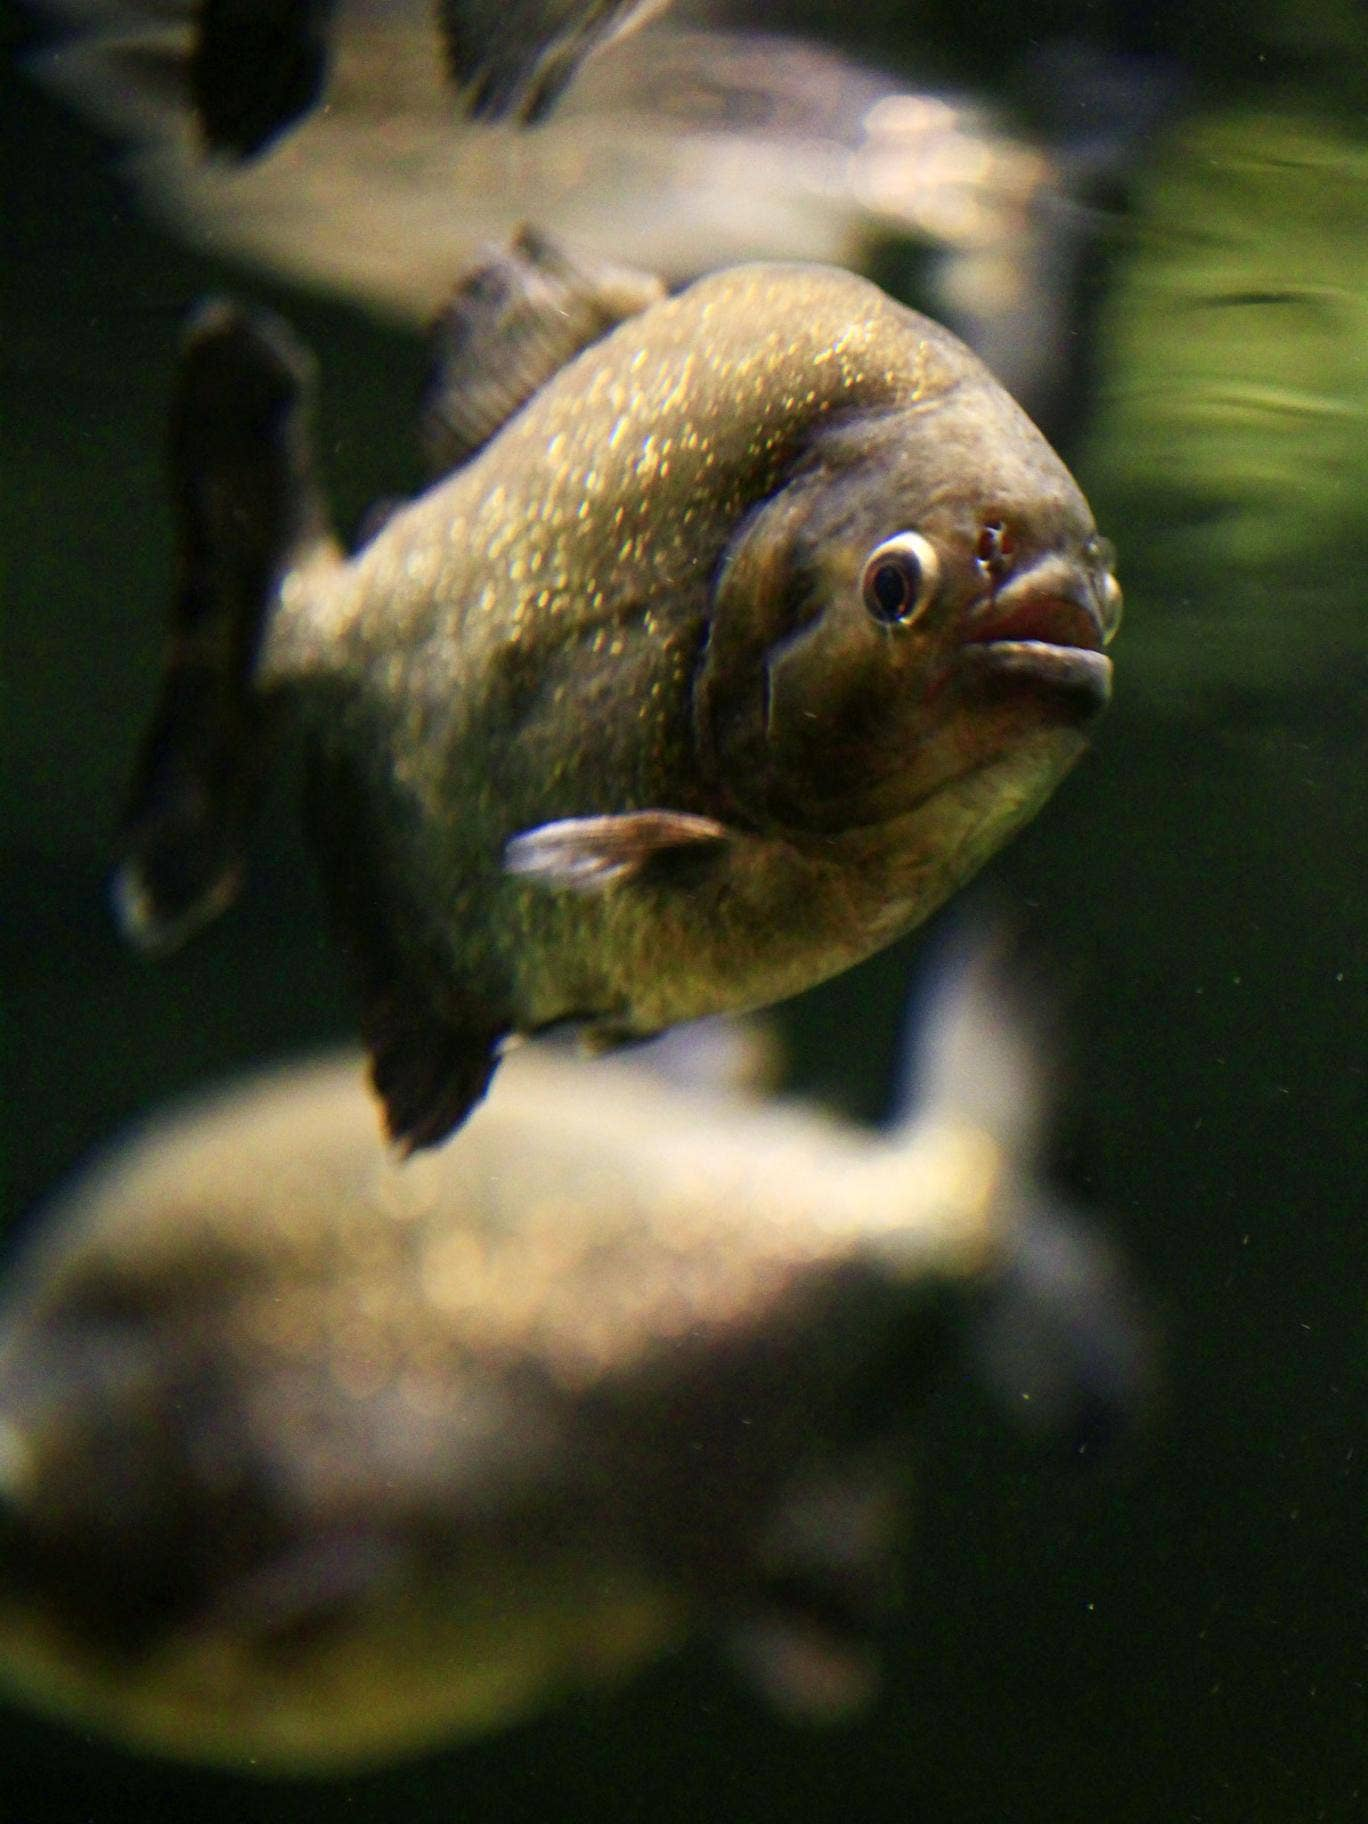 A red bellied piranha, similar to the palometas that have injured bathers in attacks in Argentina